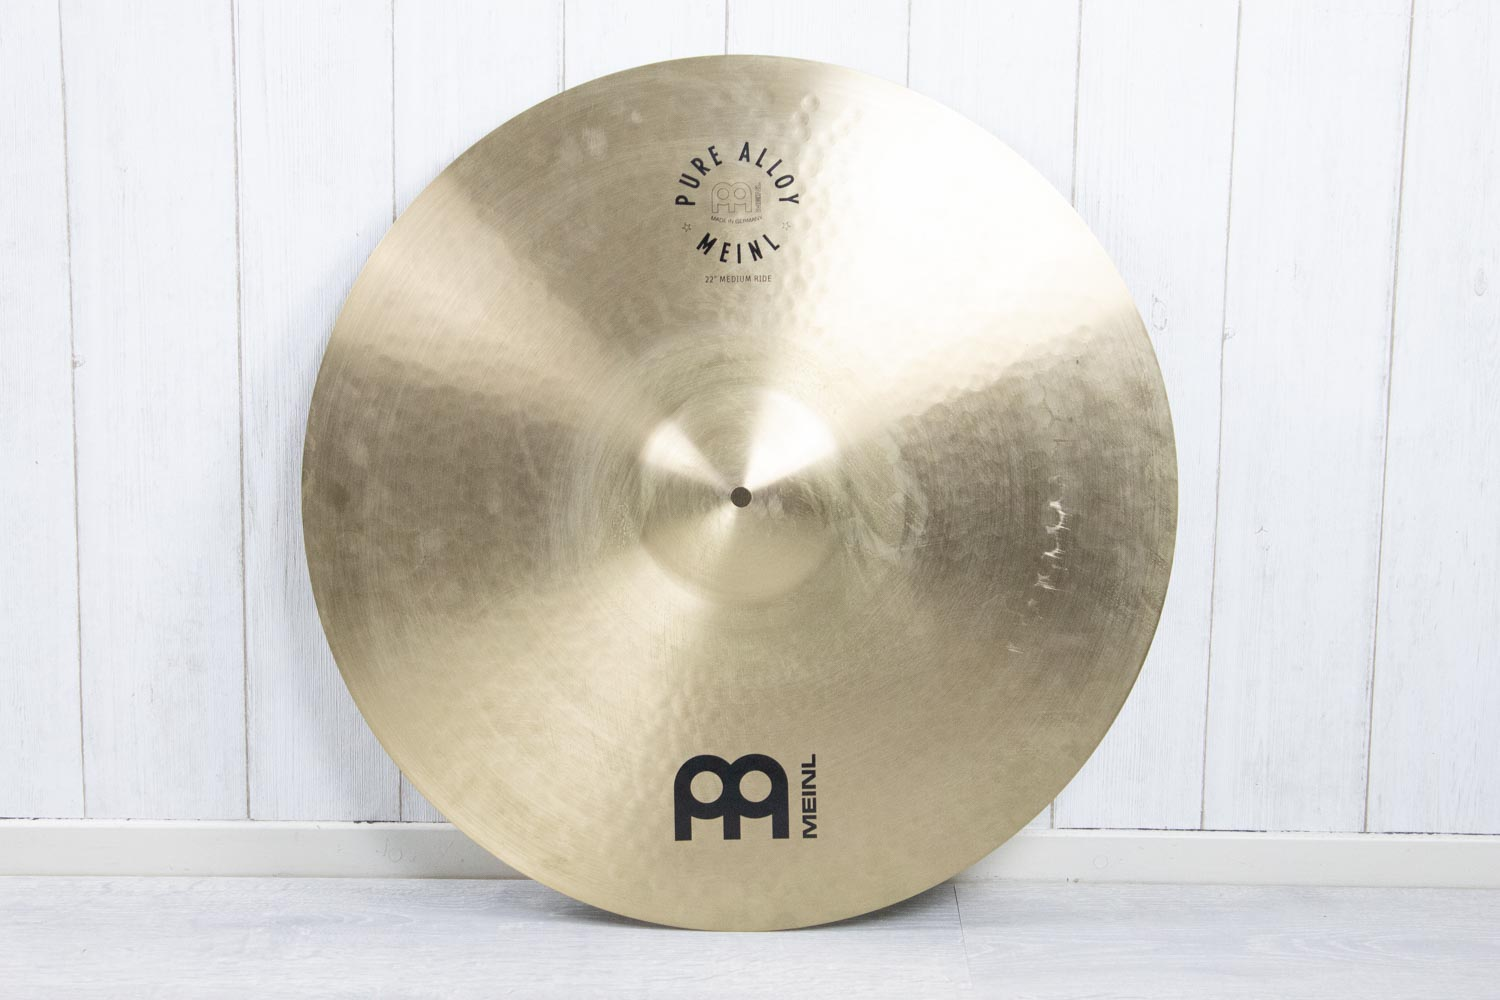 "Meinl 22"" Ride Medium PA22MR Pure Alloy (5479588462756)"